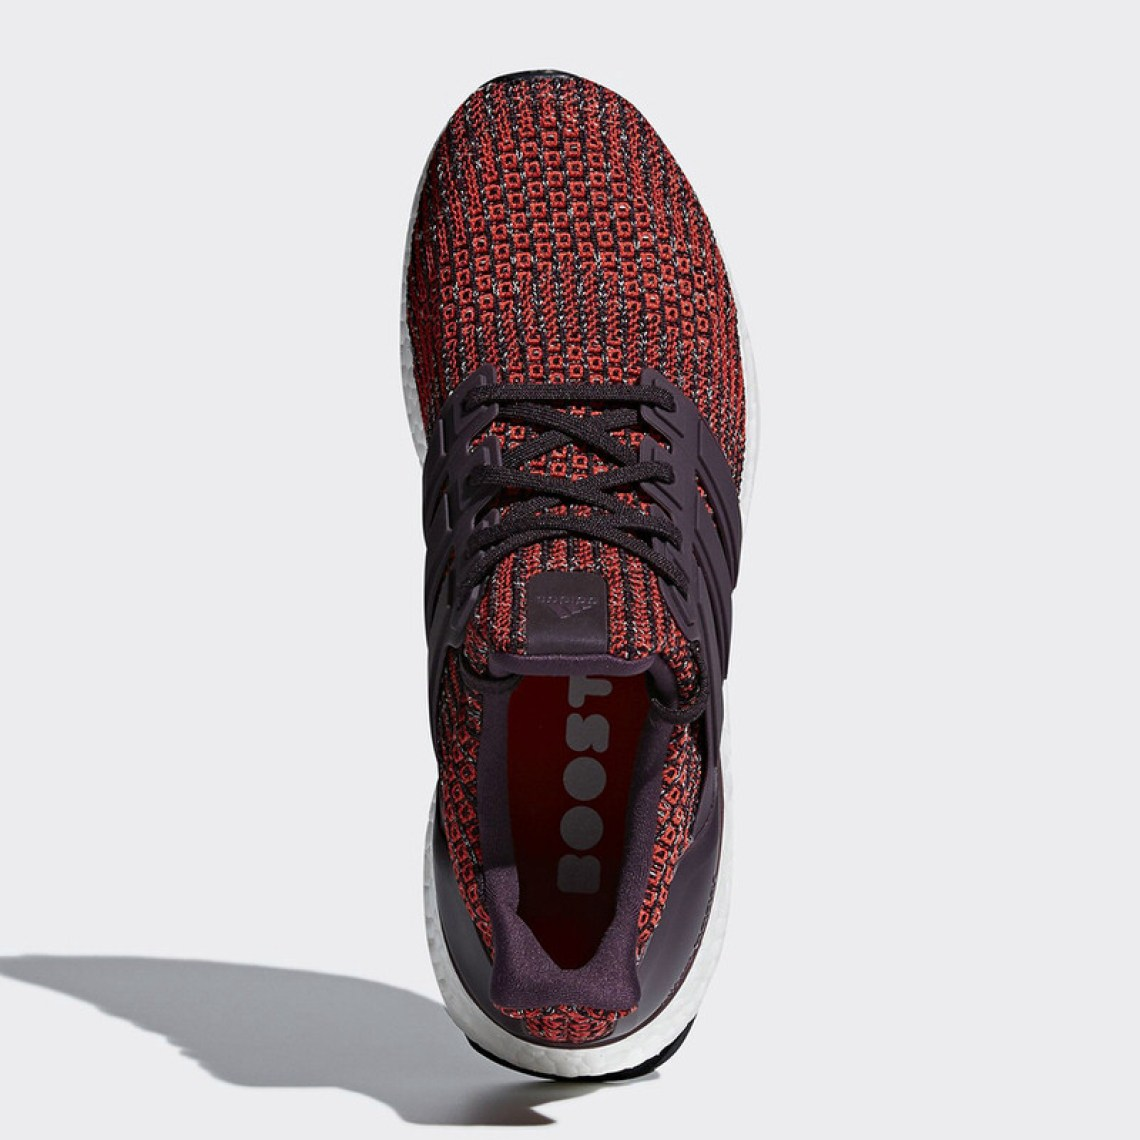 adidas UltraBoost 4.0 Athletic Shoes for Men